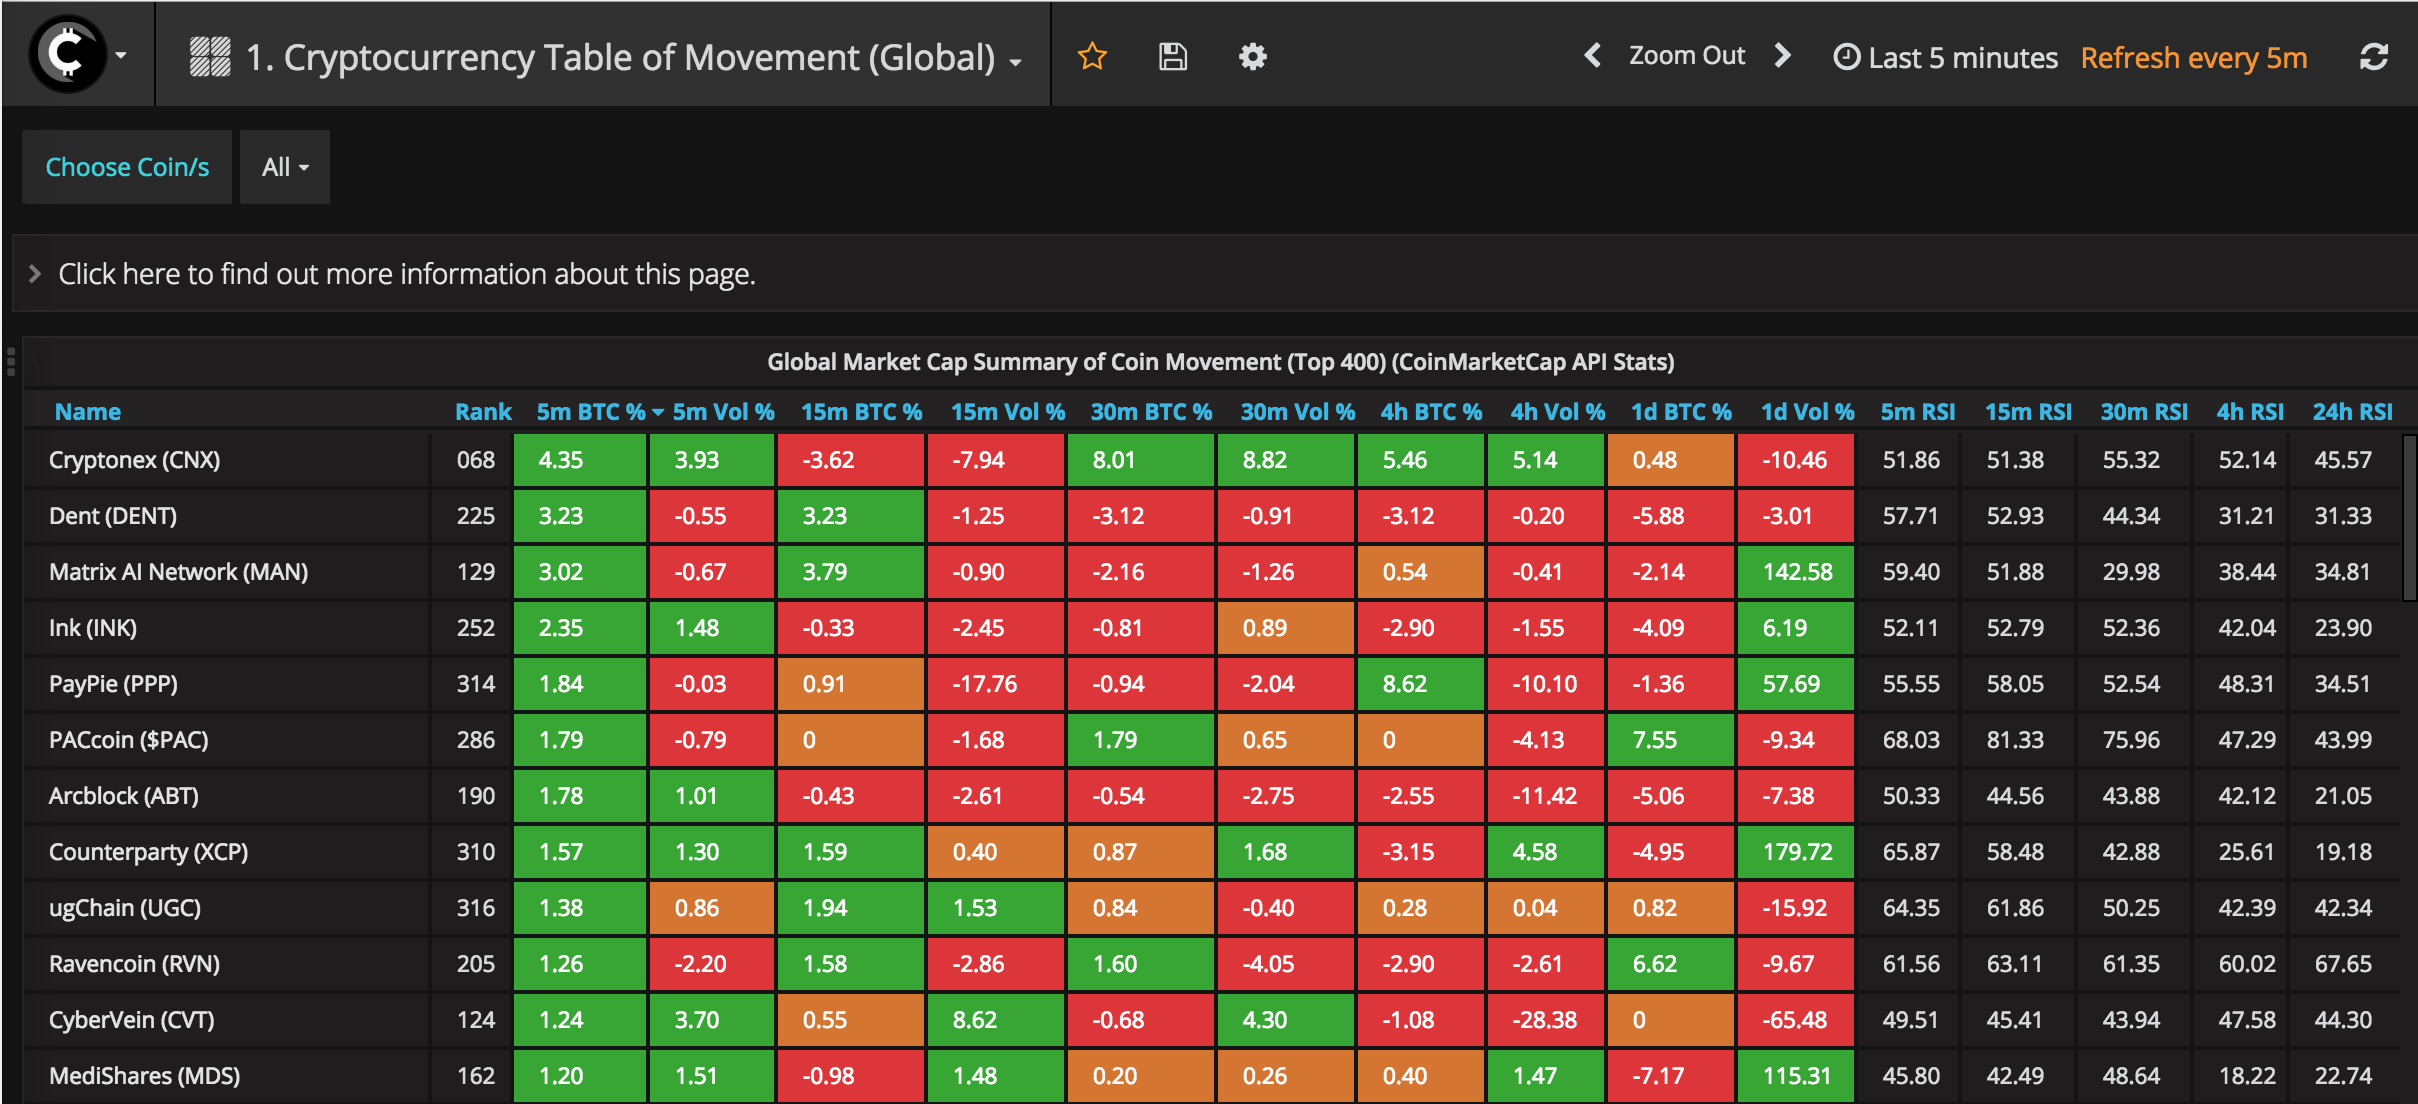 Table of Movement